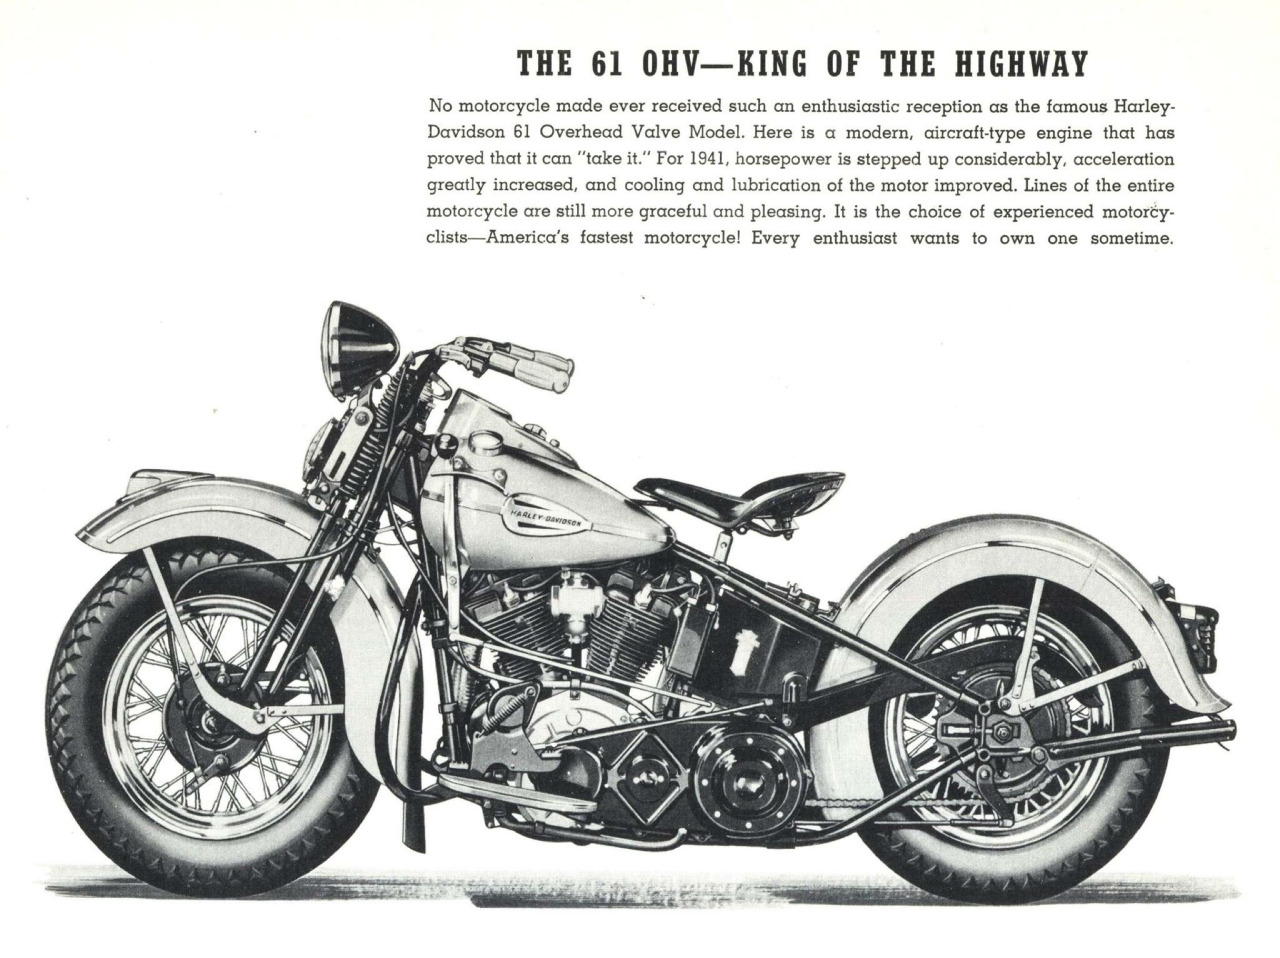 The 61 OHV